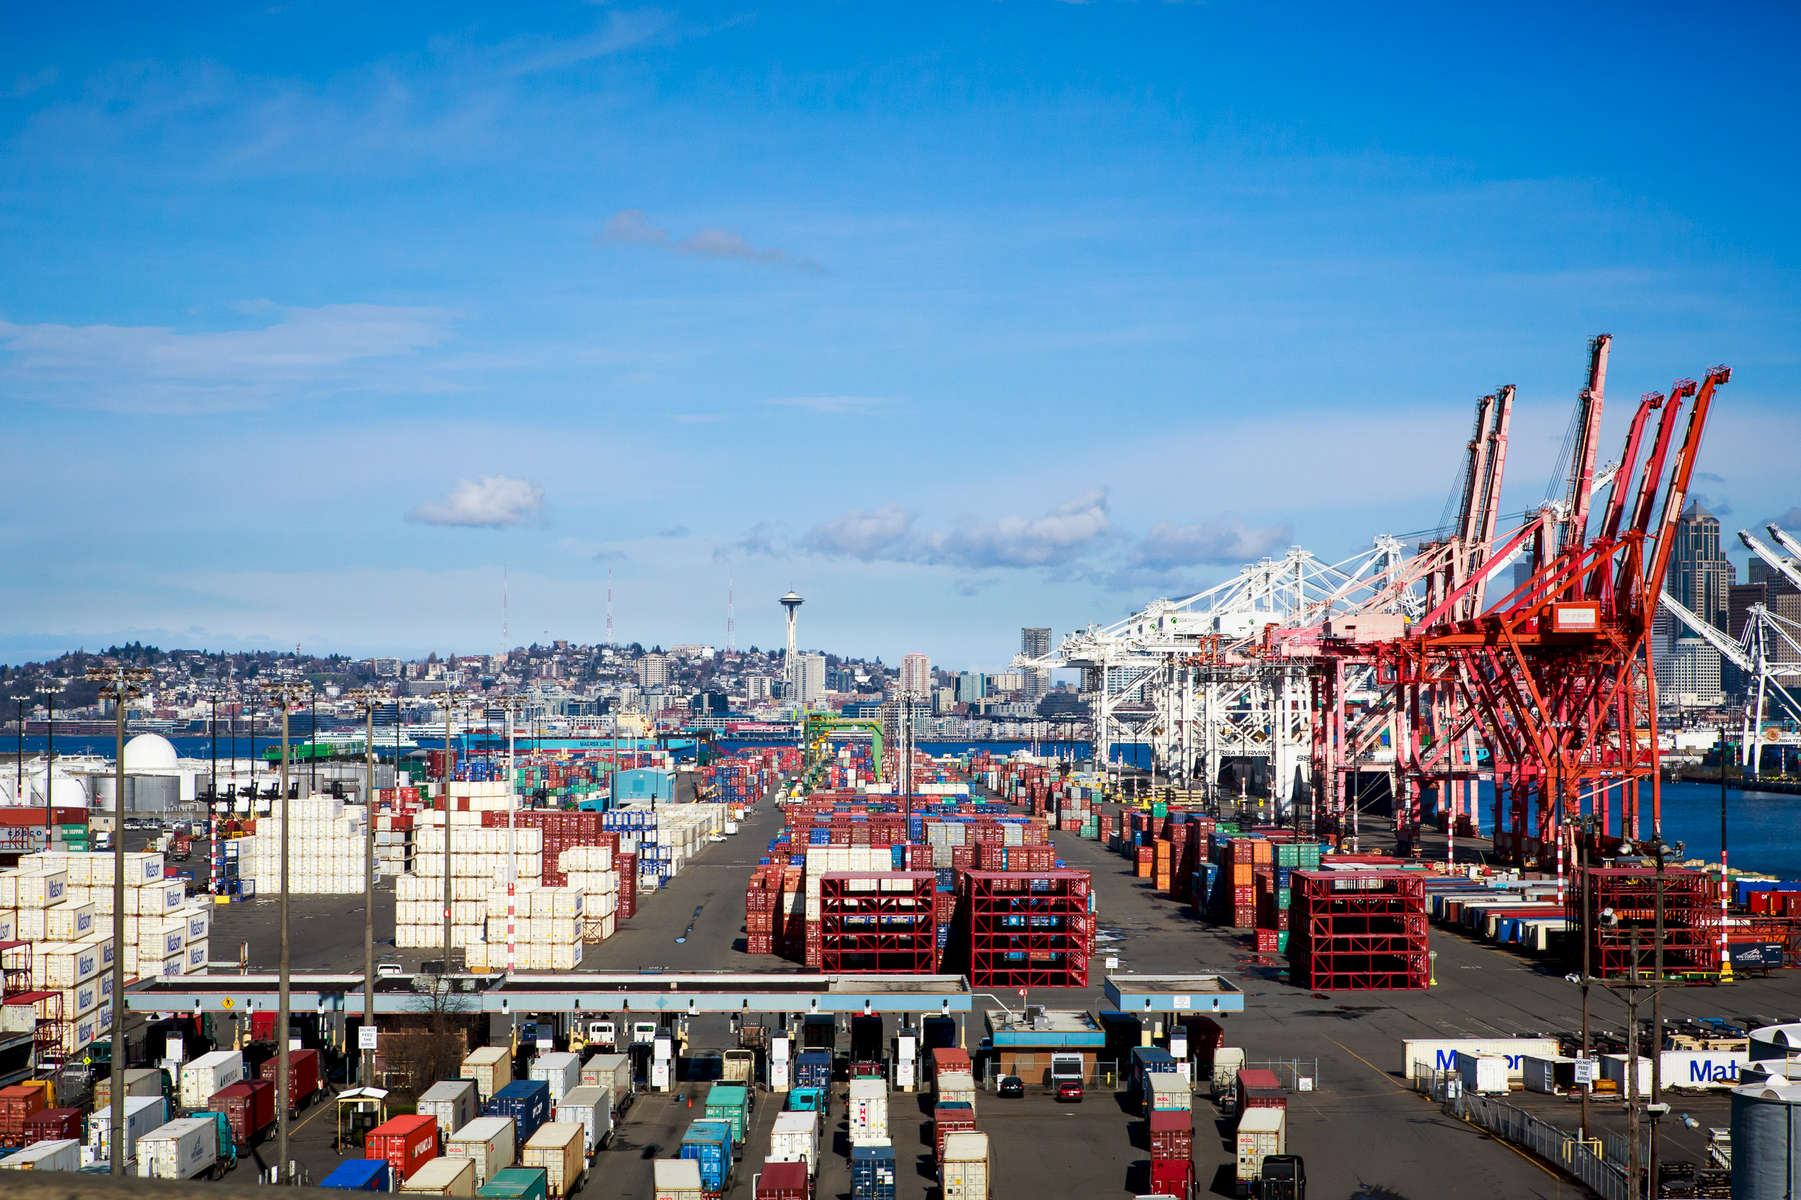 Seattle, WA., March 12, 2015:  The Port of Seattle. Shell Oil has signed a lease which would allow it to winter-over its Arctic drilling equipment here. That is causing a lot of controversy with everyone from the mayor to an upcoming court battle. Photograph by Evan McGlinn for The New York Times.